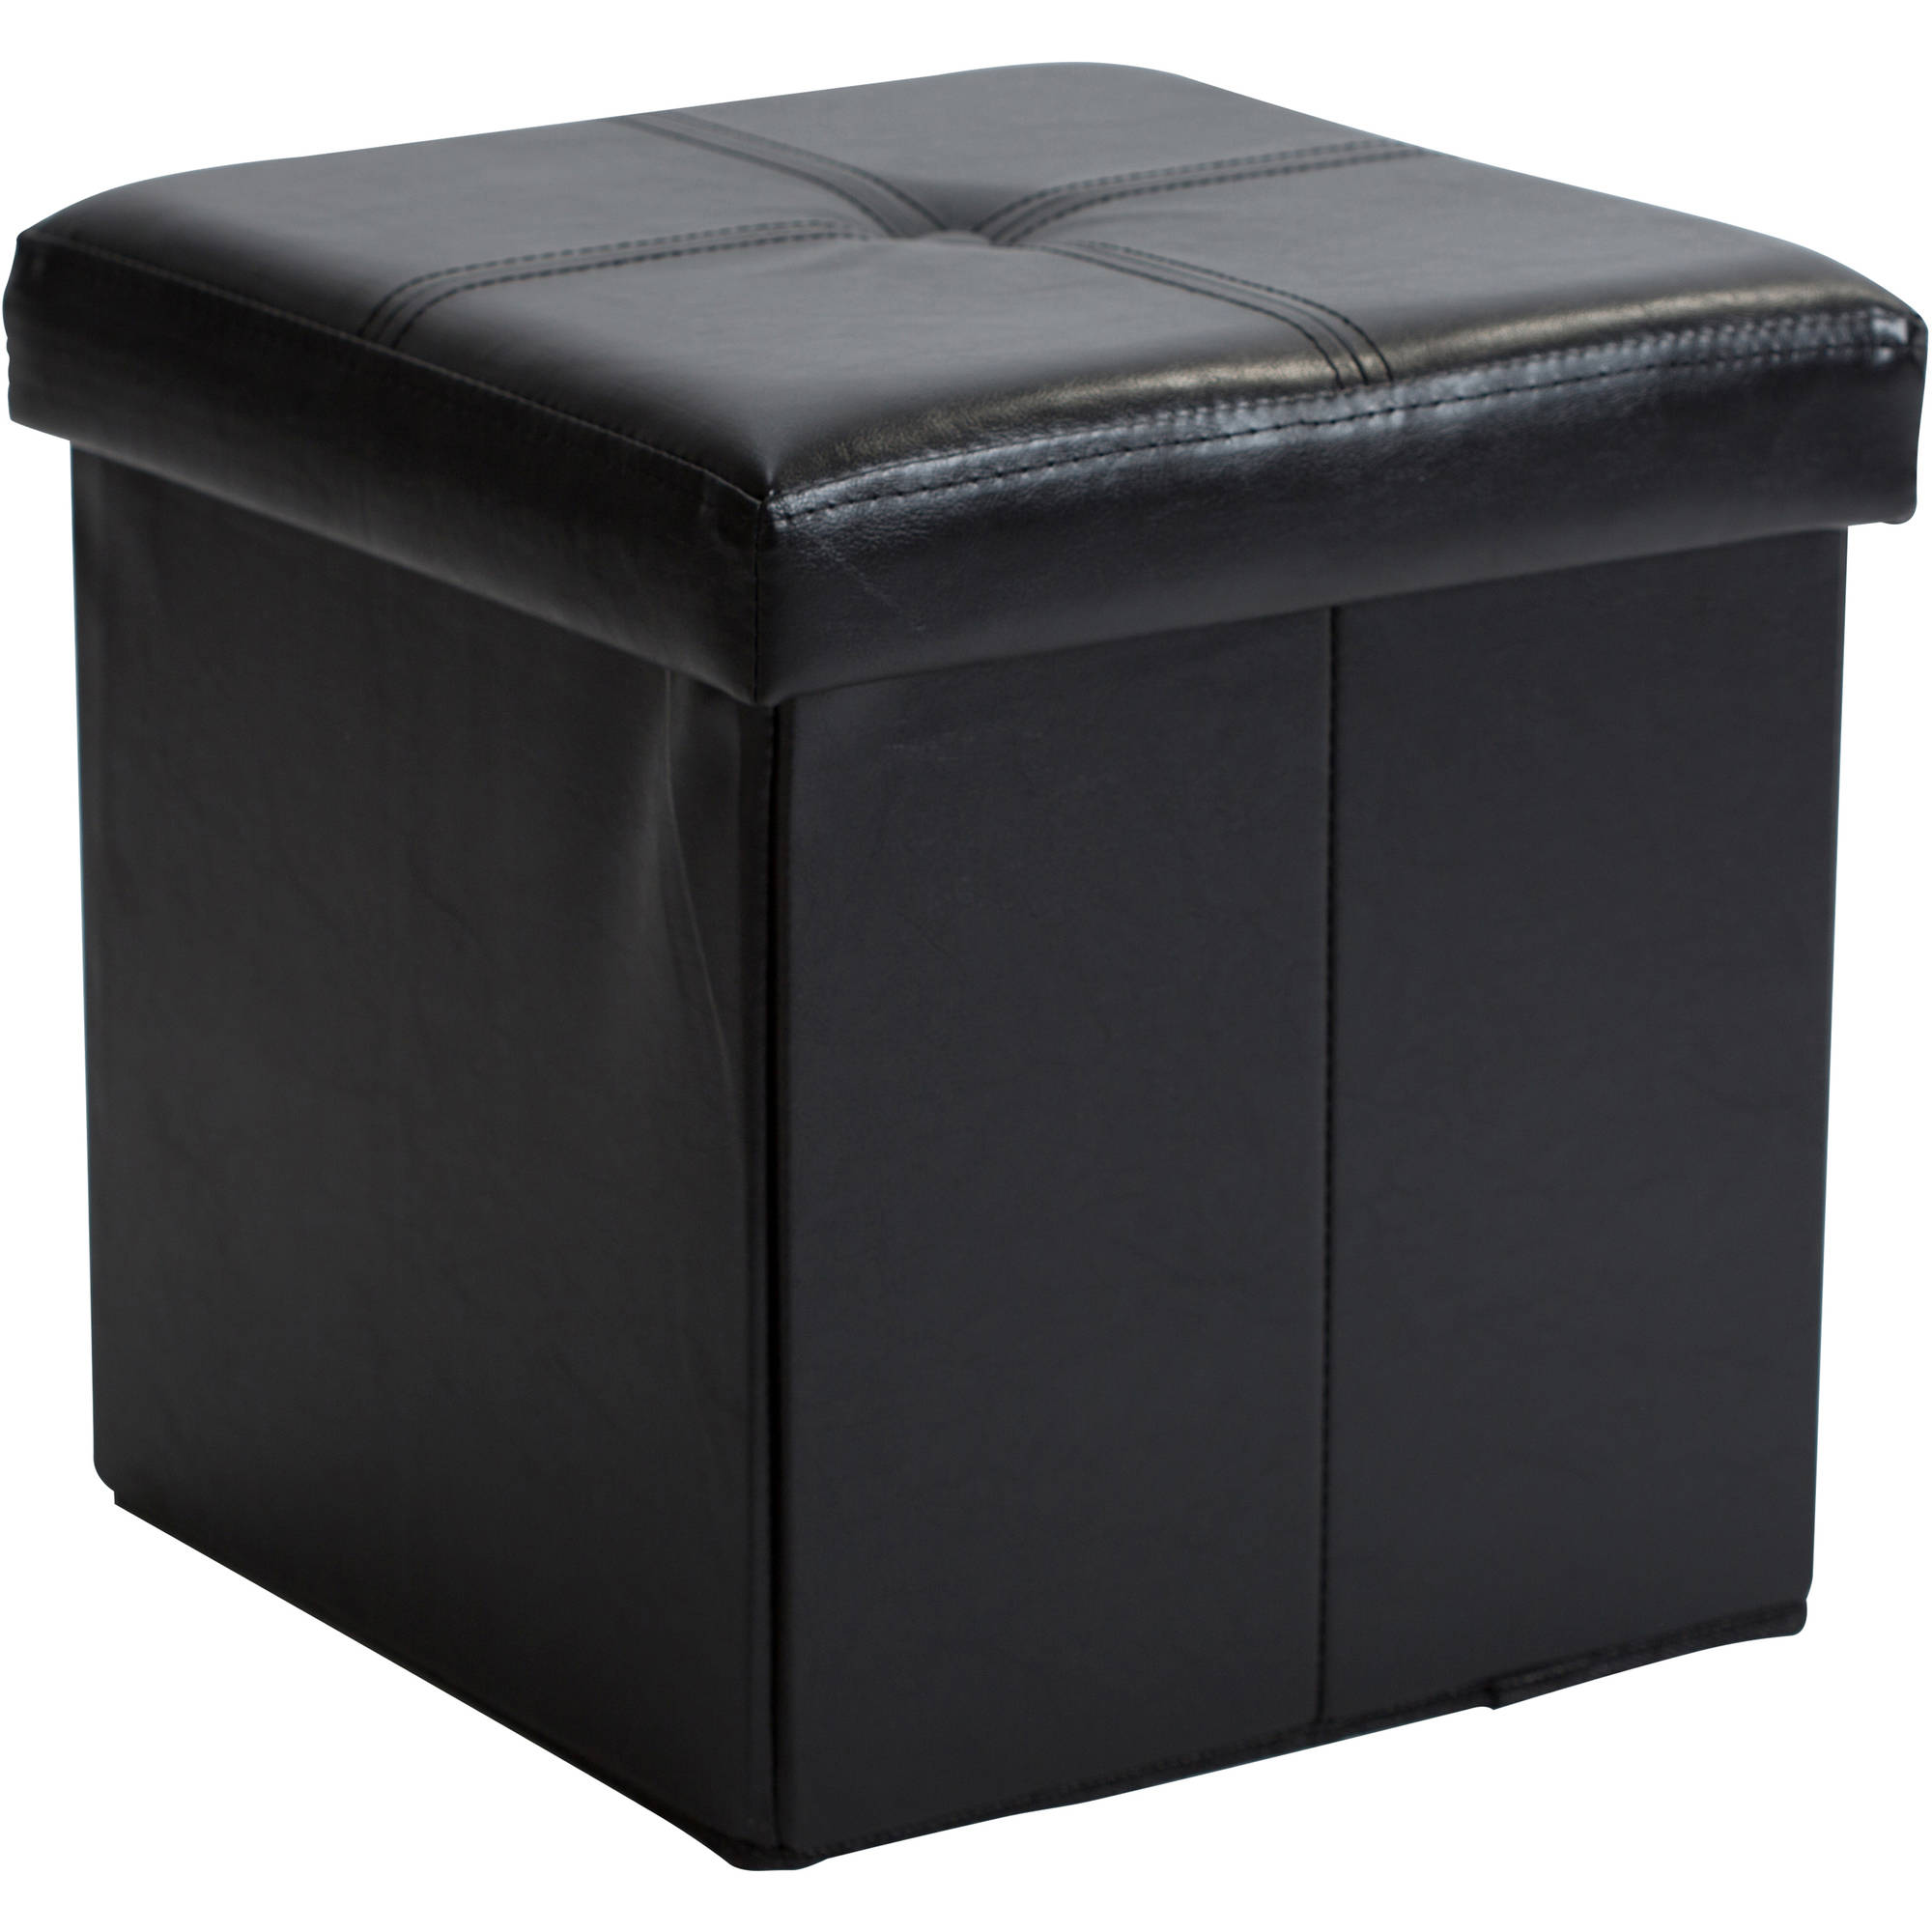 Single Folding Ottoman Black  sc 1 st  Walmart & Storage Ottomans